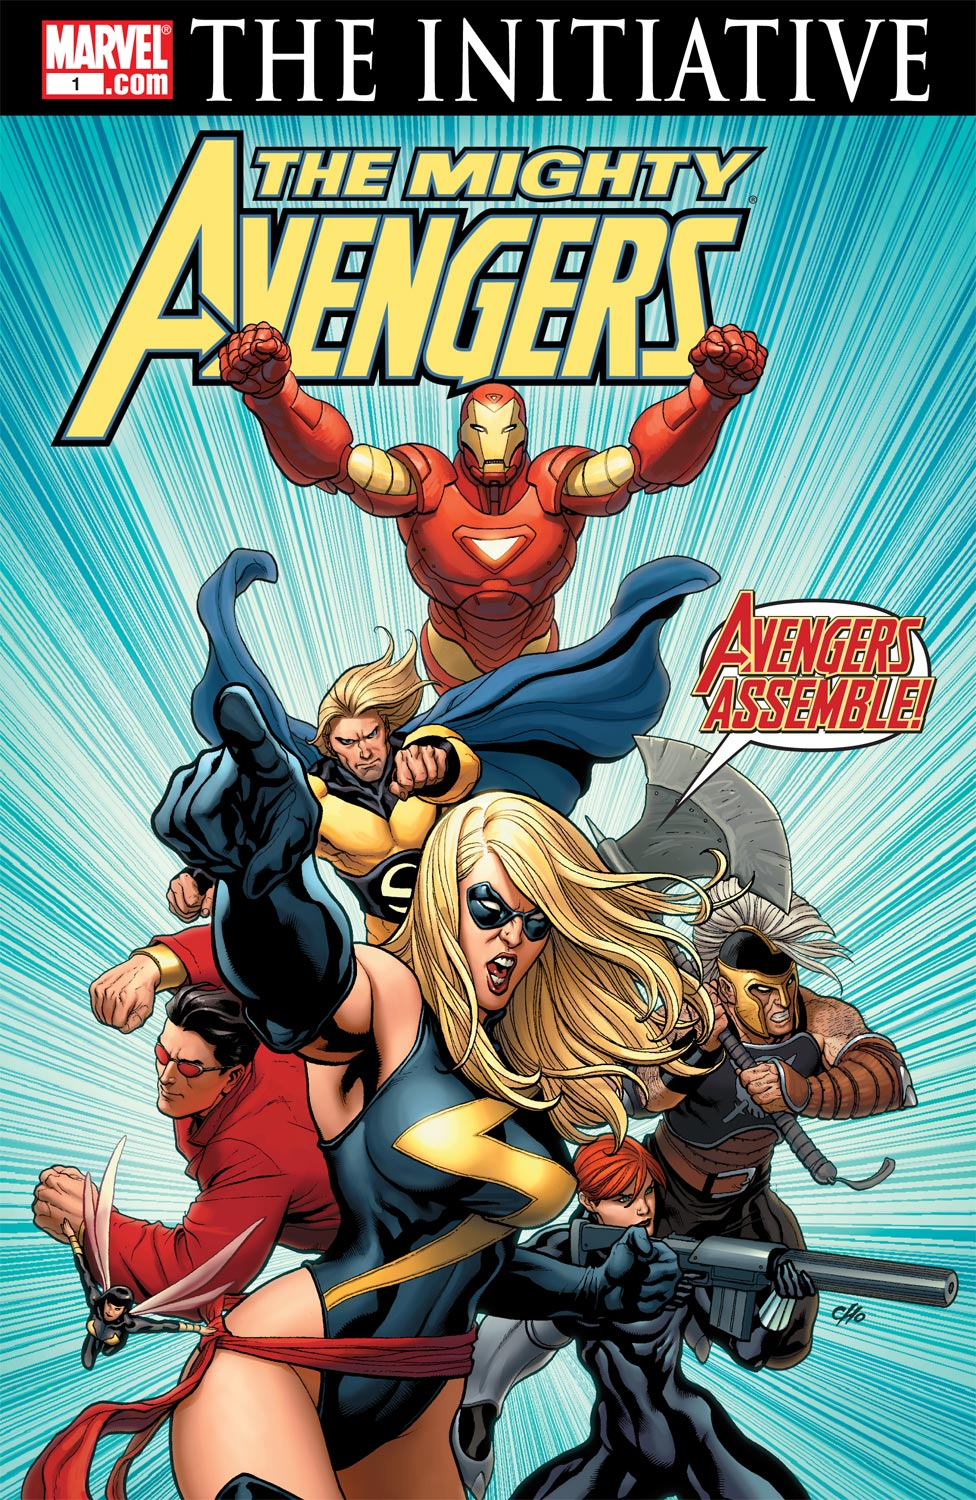 The Mighty Avengers (2007) #1